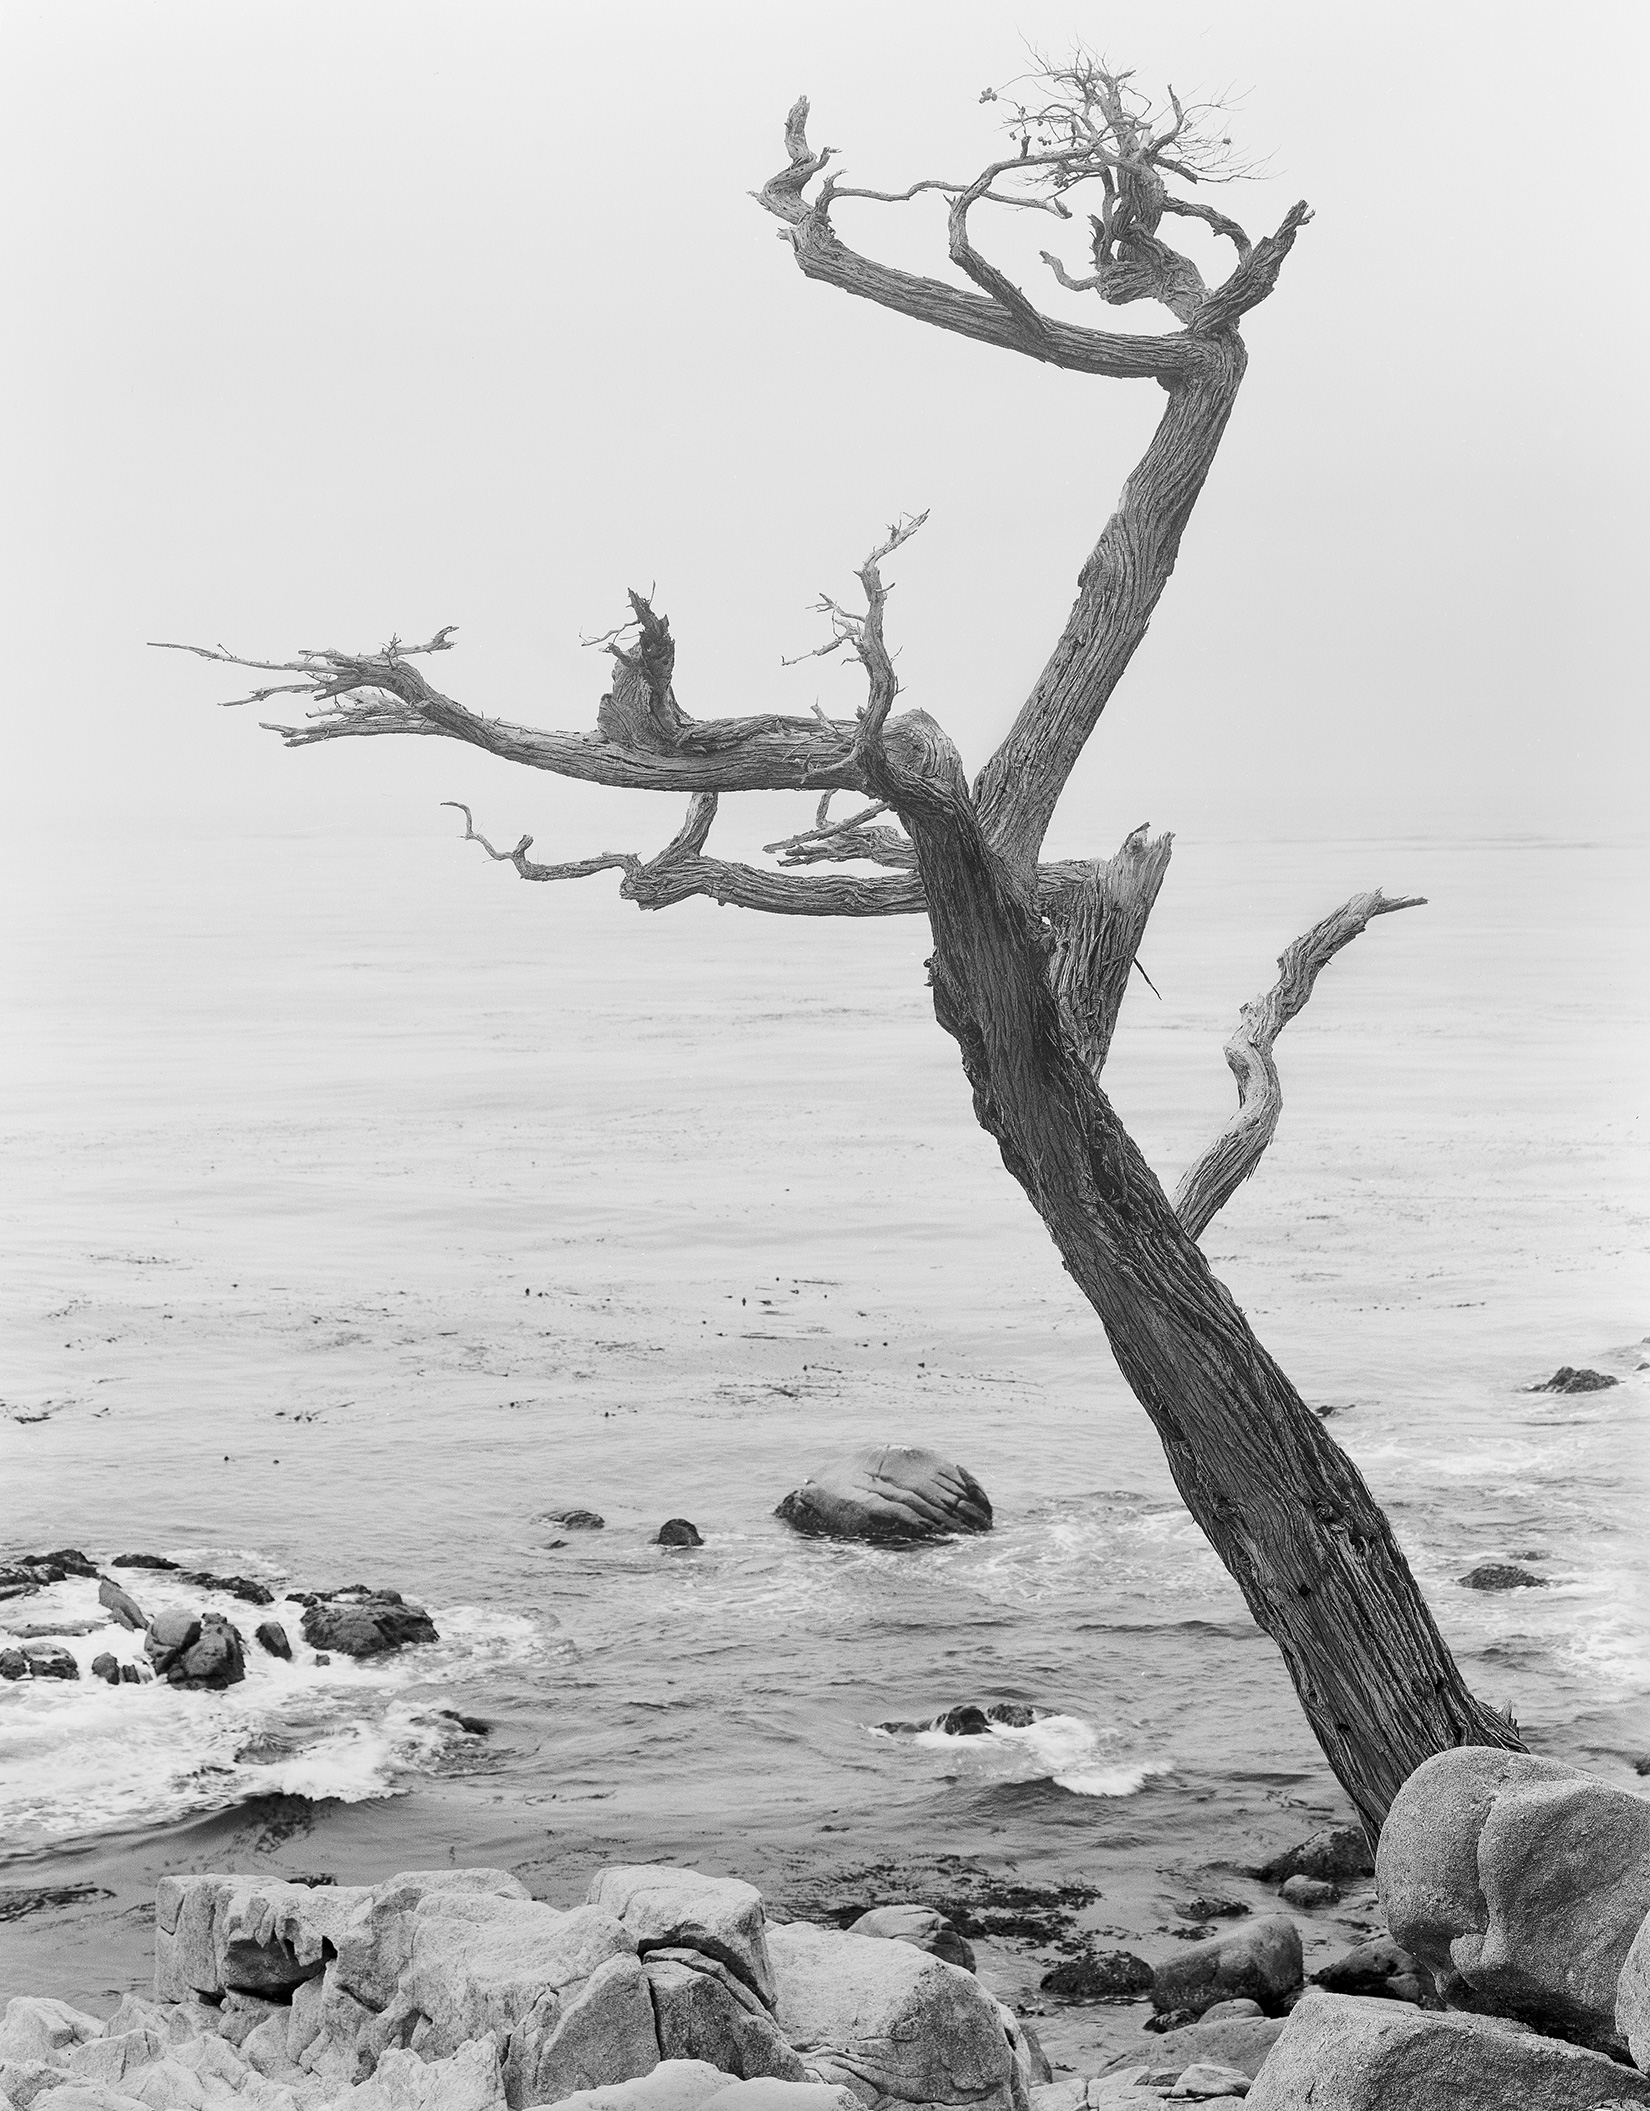 Witch Tree, Pt. Lobos